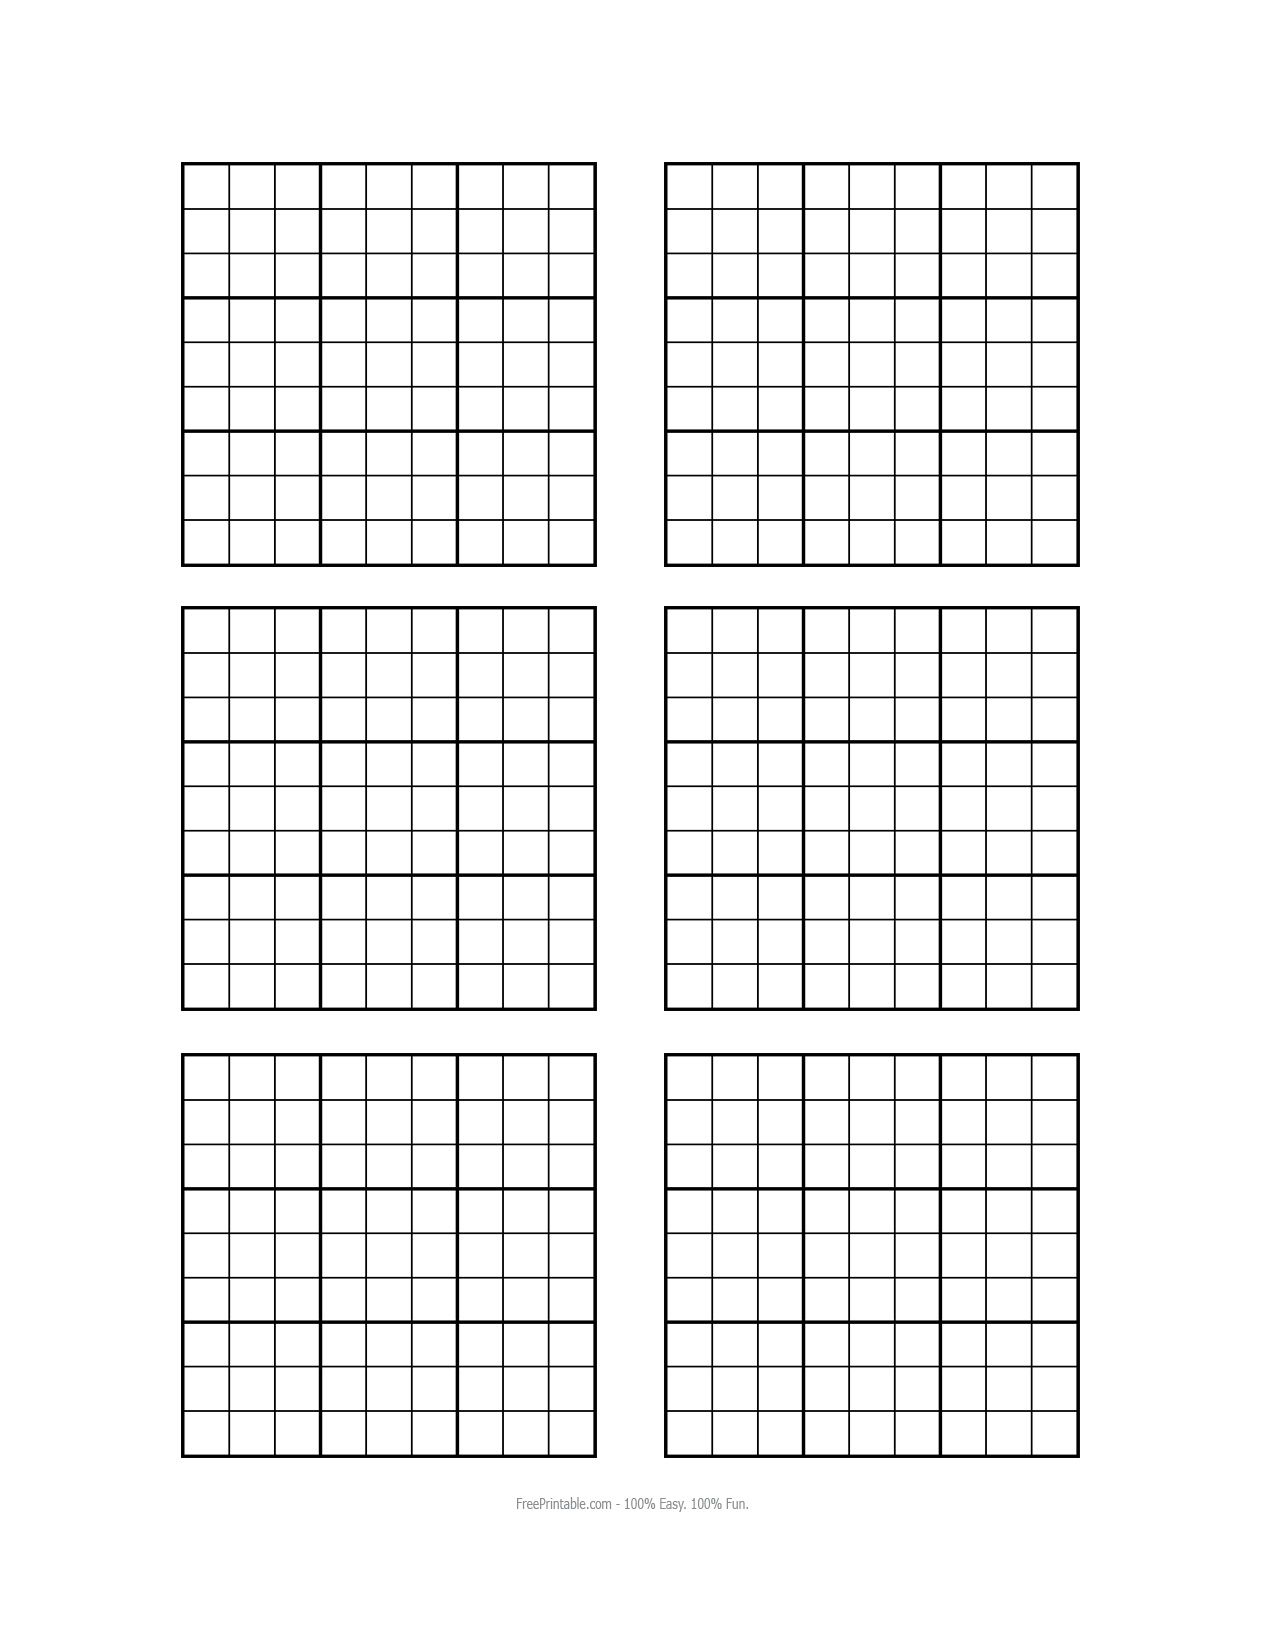 picture regarding Printable Sudoku Grids titled Free of charge Printable Blank Sudoku Grids Misc Things Grid paper